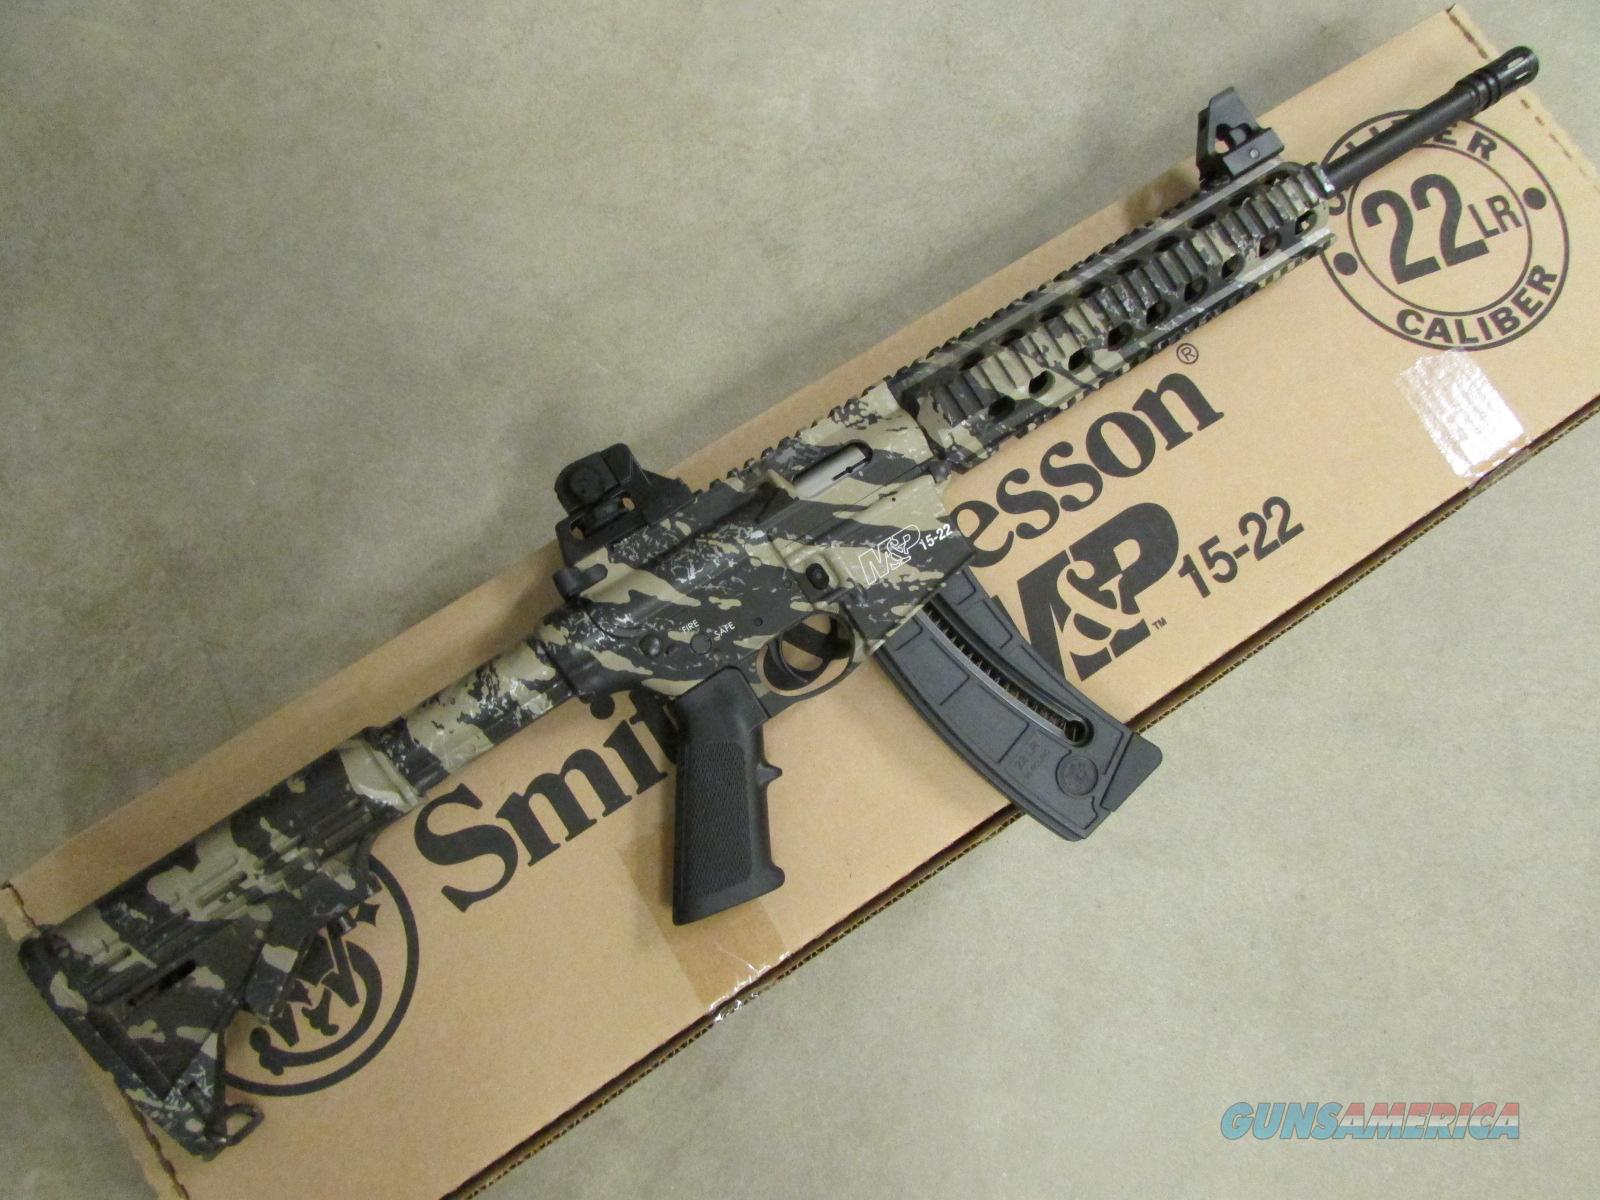 "Smith & Wesson M&P15-22 Tan and Black 16.5"" Threaded BBL .22 LR  Guns > Rifles > Smith & Wesson Rifles > M&P"